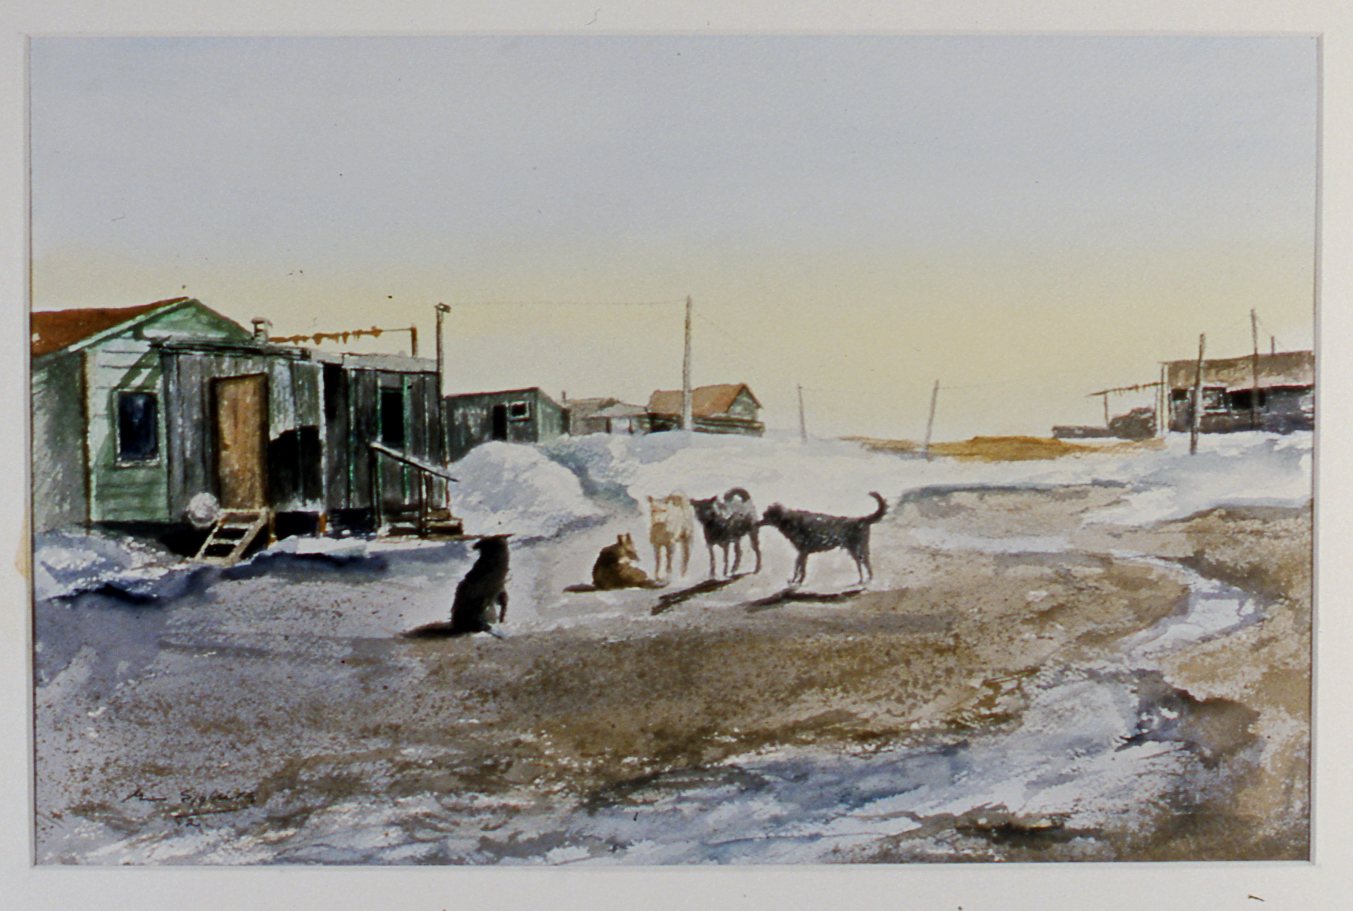 """Spring Day, 1982, Minn Sjølseth, watercolour, 9 1/4"""" x 13 1/2"""", 2000.04.03, gift of Al and Laila Campbell"""